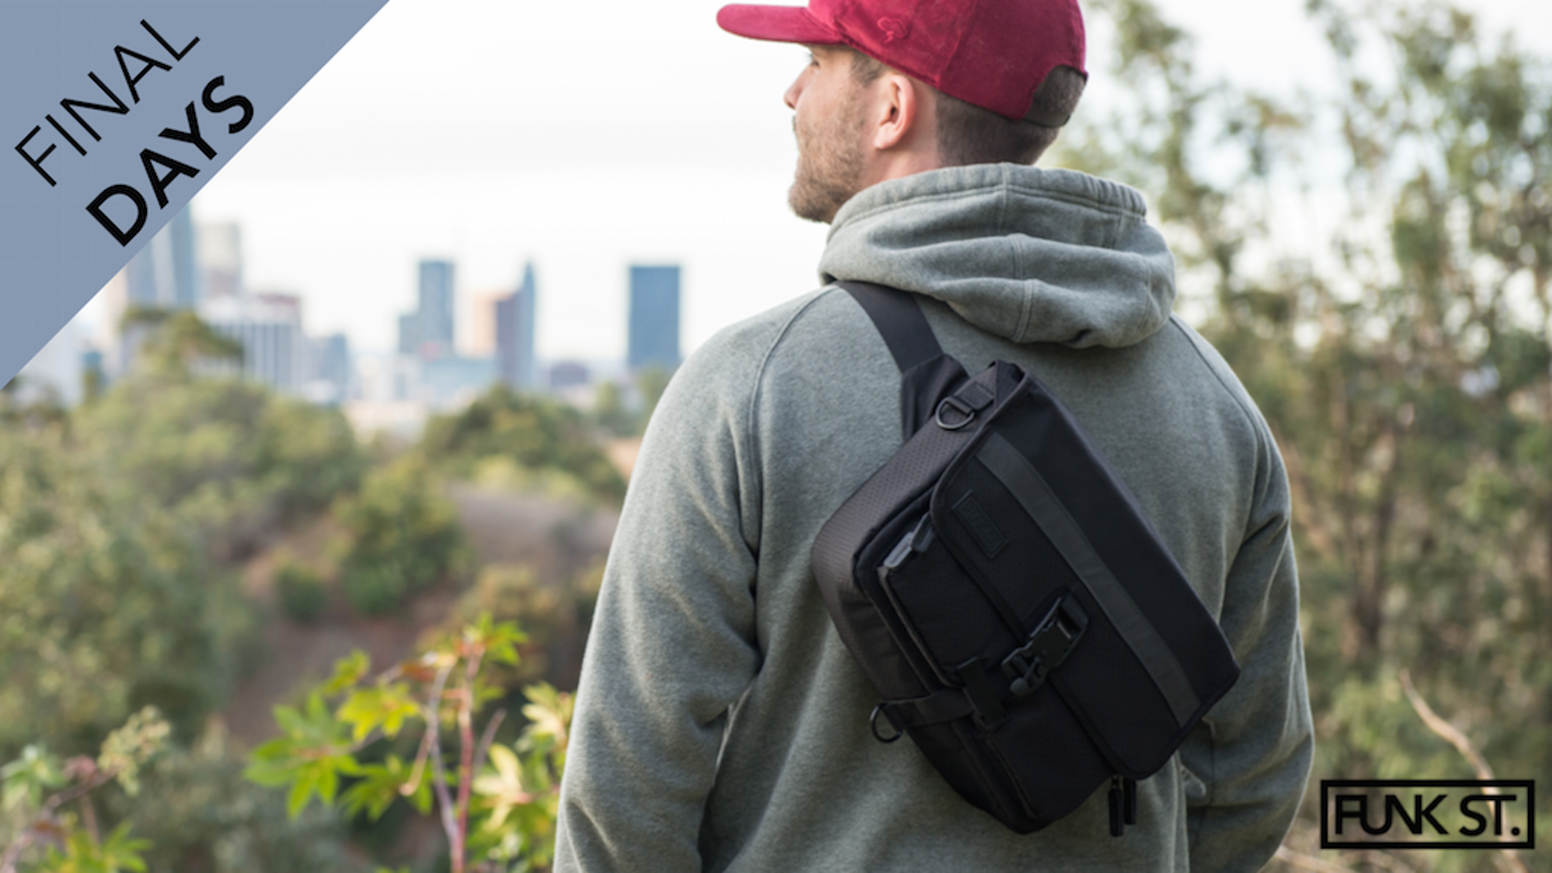 Ditch the heavy backpack for your EDC needs. The Commuterpak can be worn as a sling, waist bag & satchel and comes w/Lifetime Warranty!